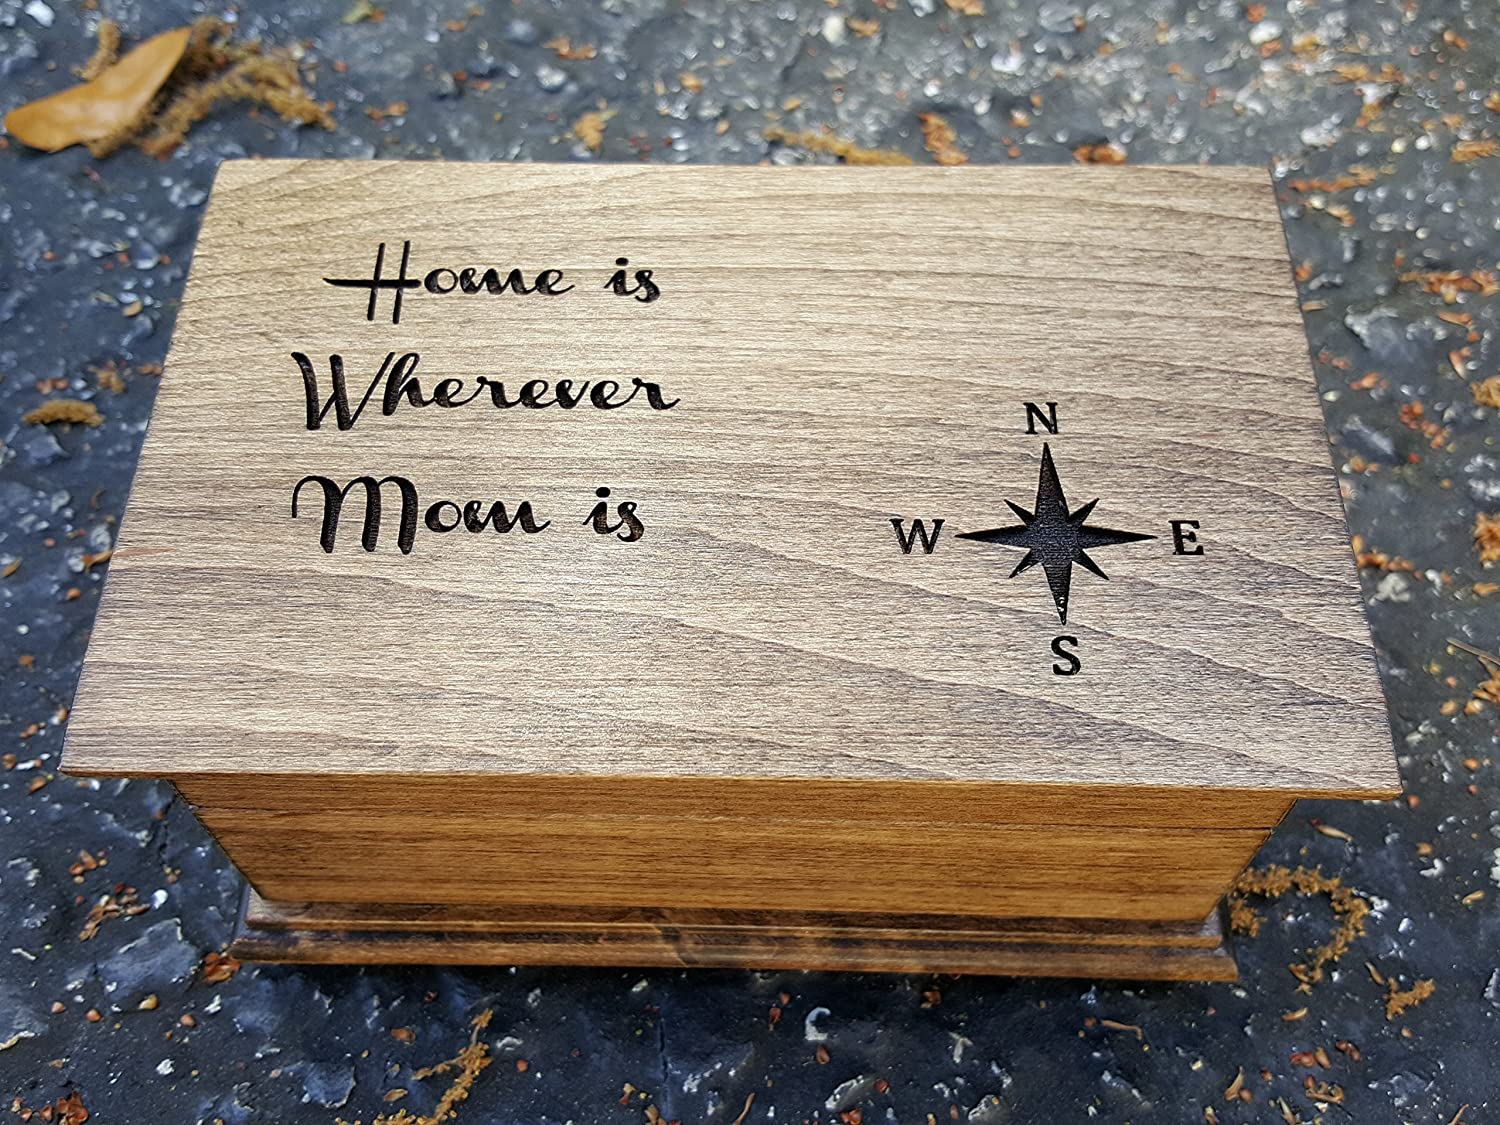 Custom engraved musical jewelry box with Home is Wherever Mom is engraved on top along with compass rose